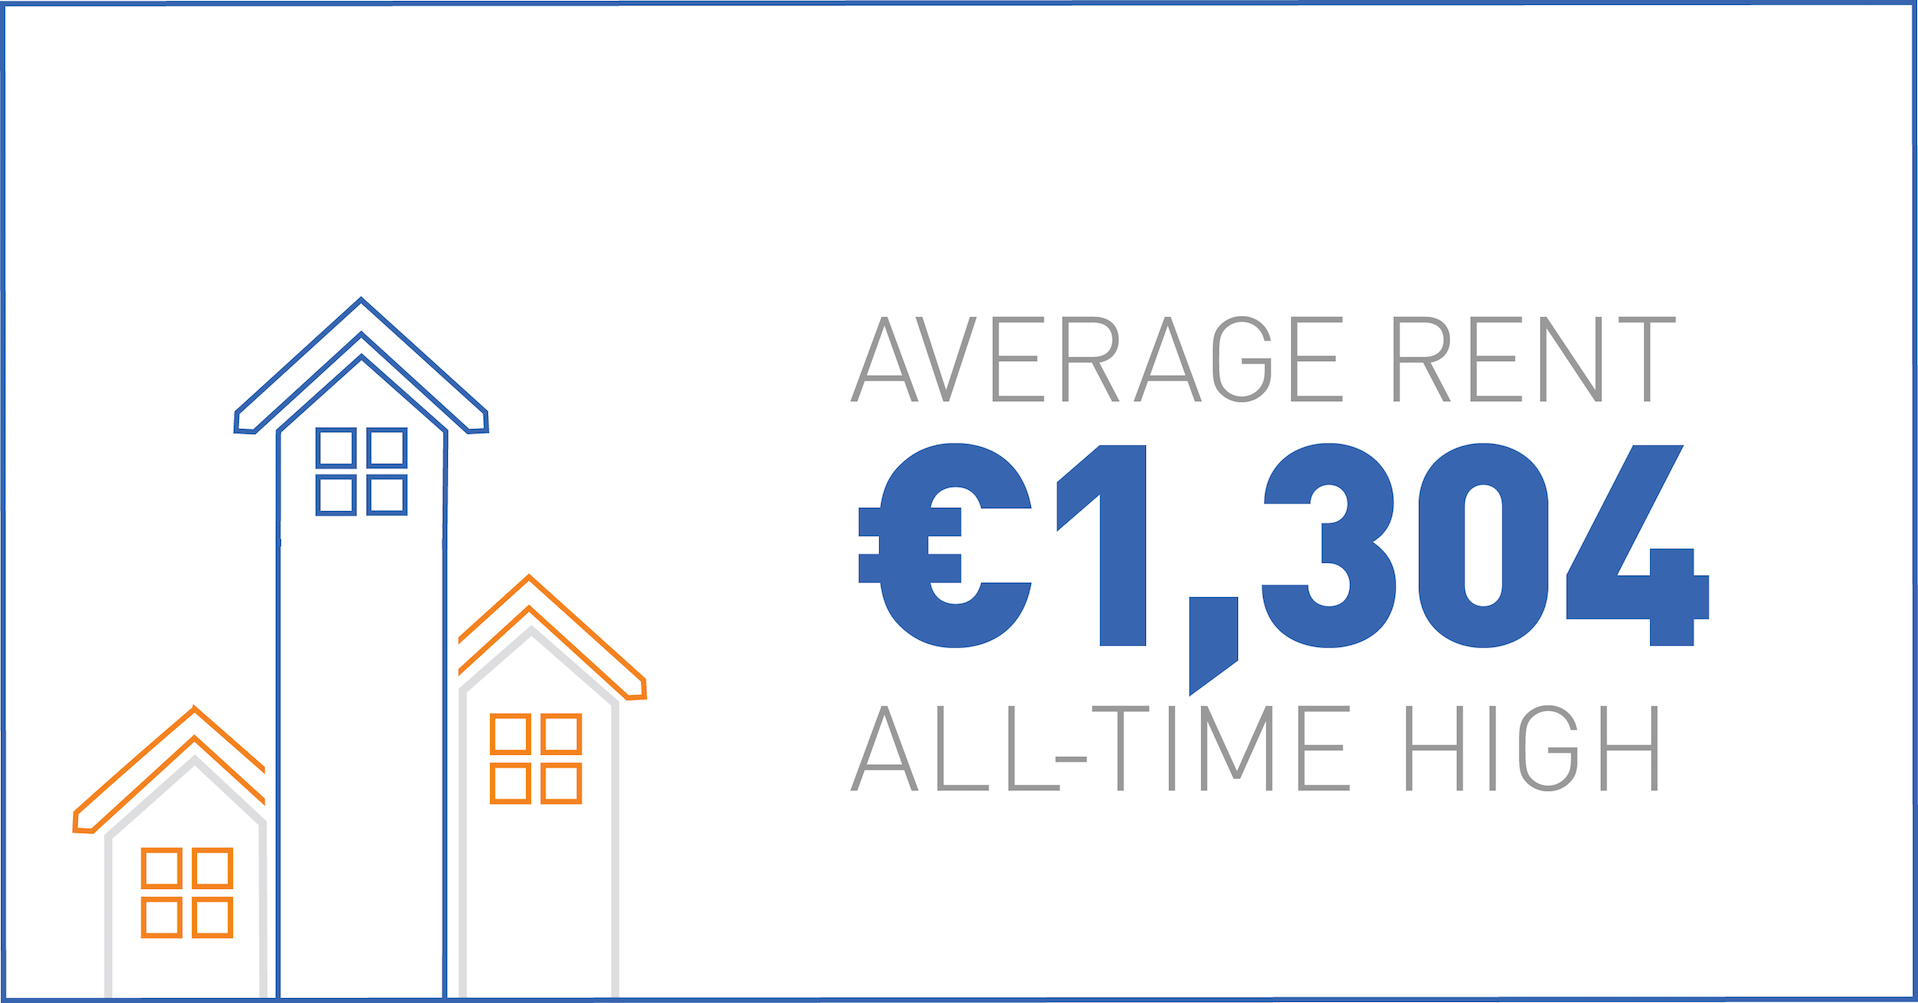 Average rental price - all time high